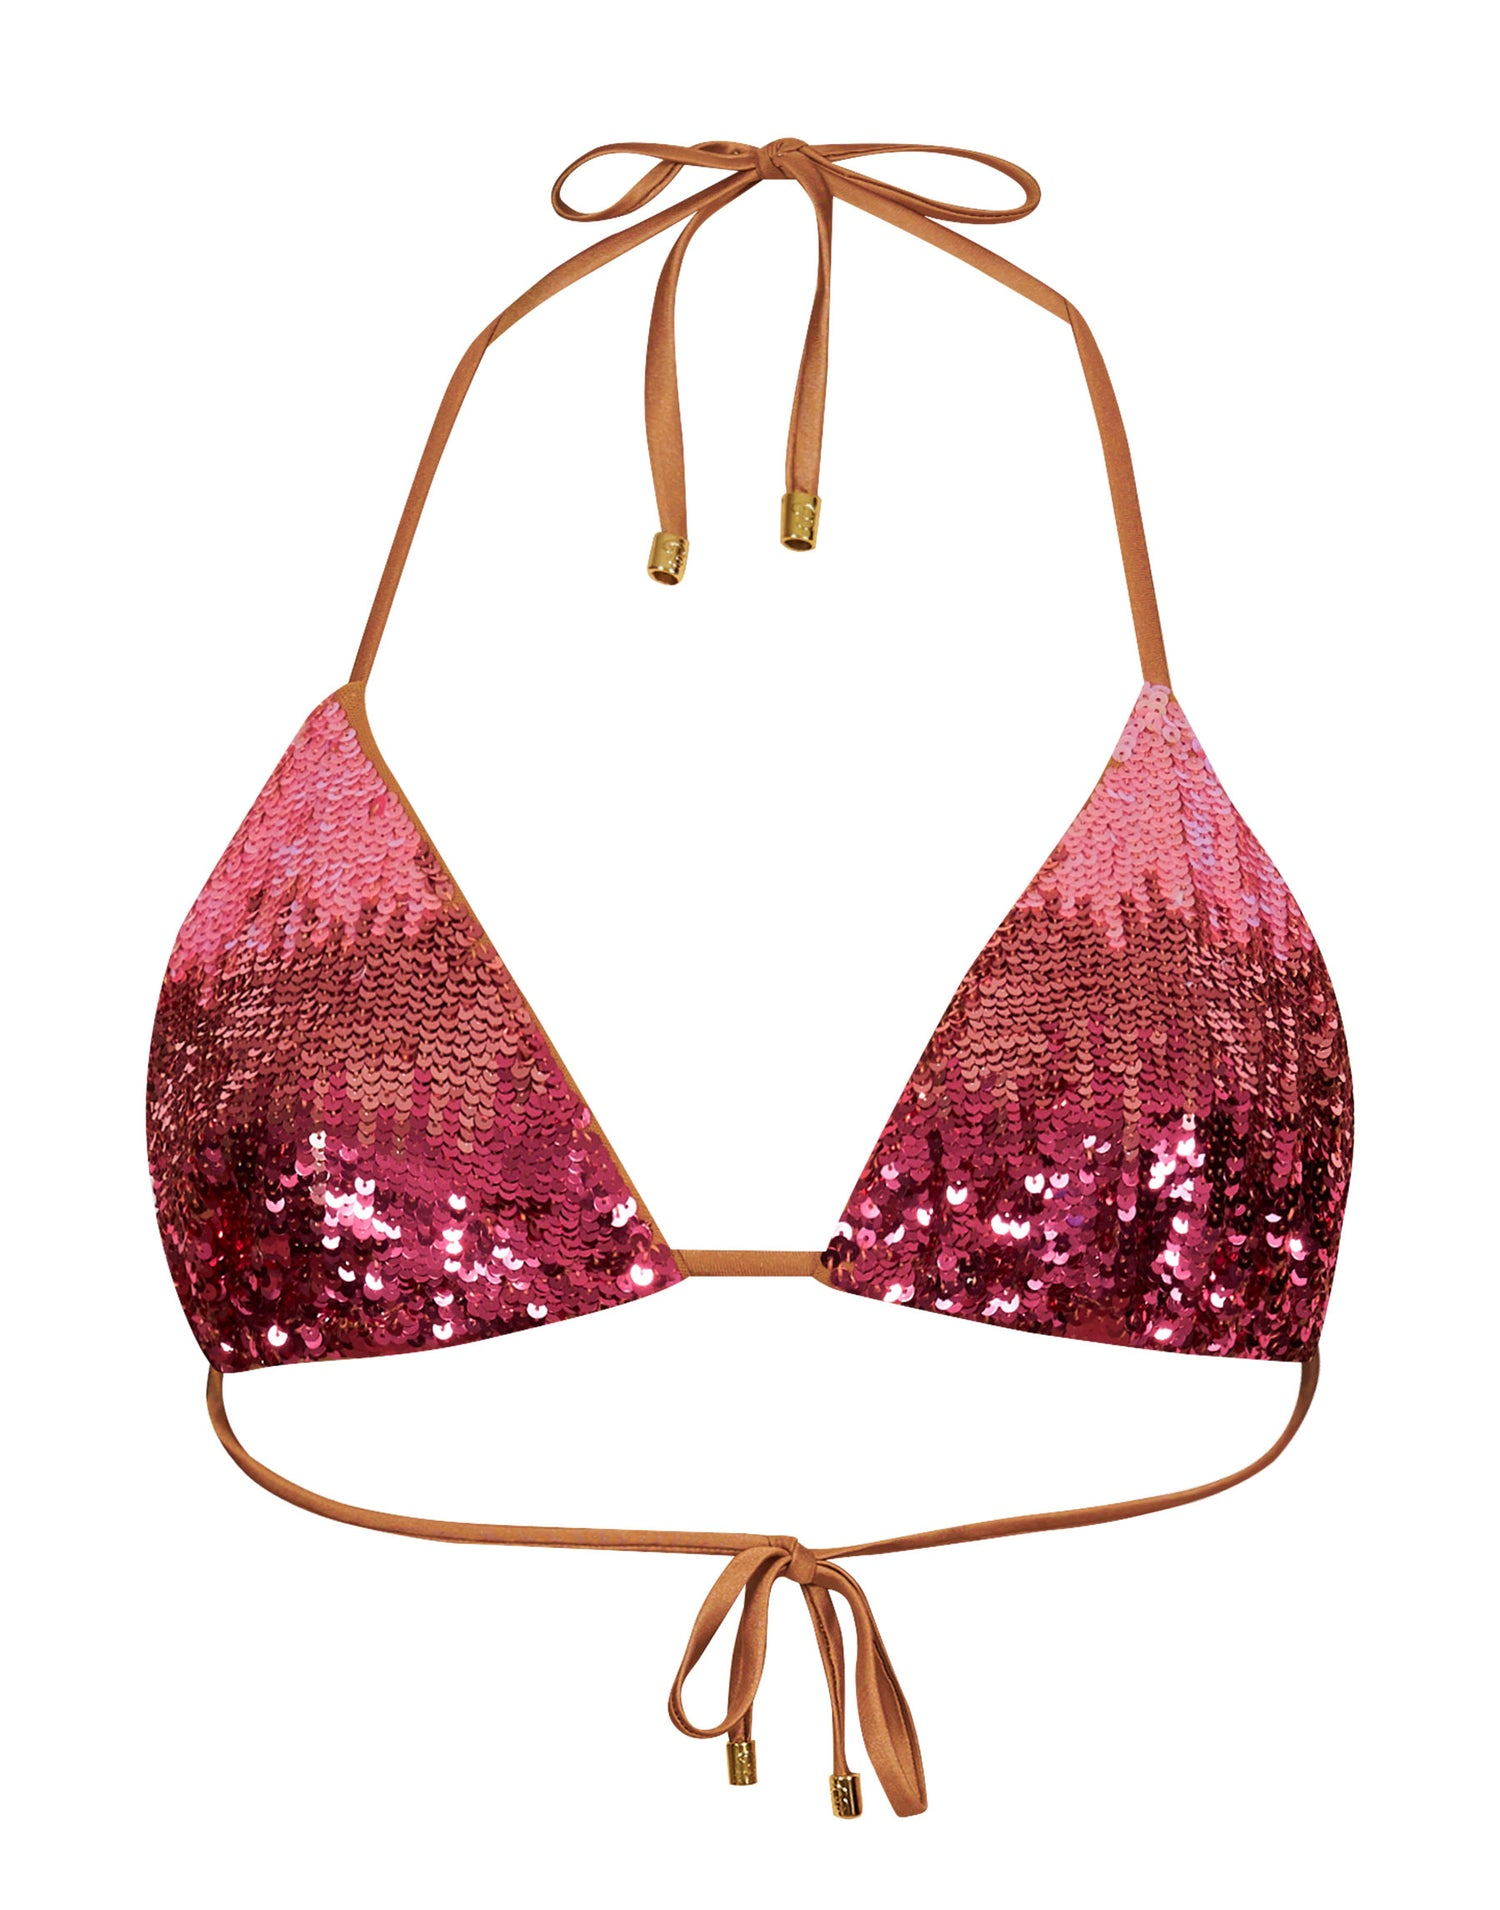 Ariel Triangle Bikini Top in Pink Ombre - product view